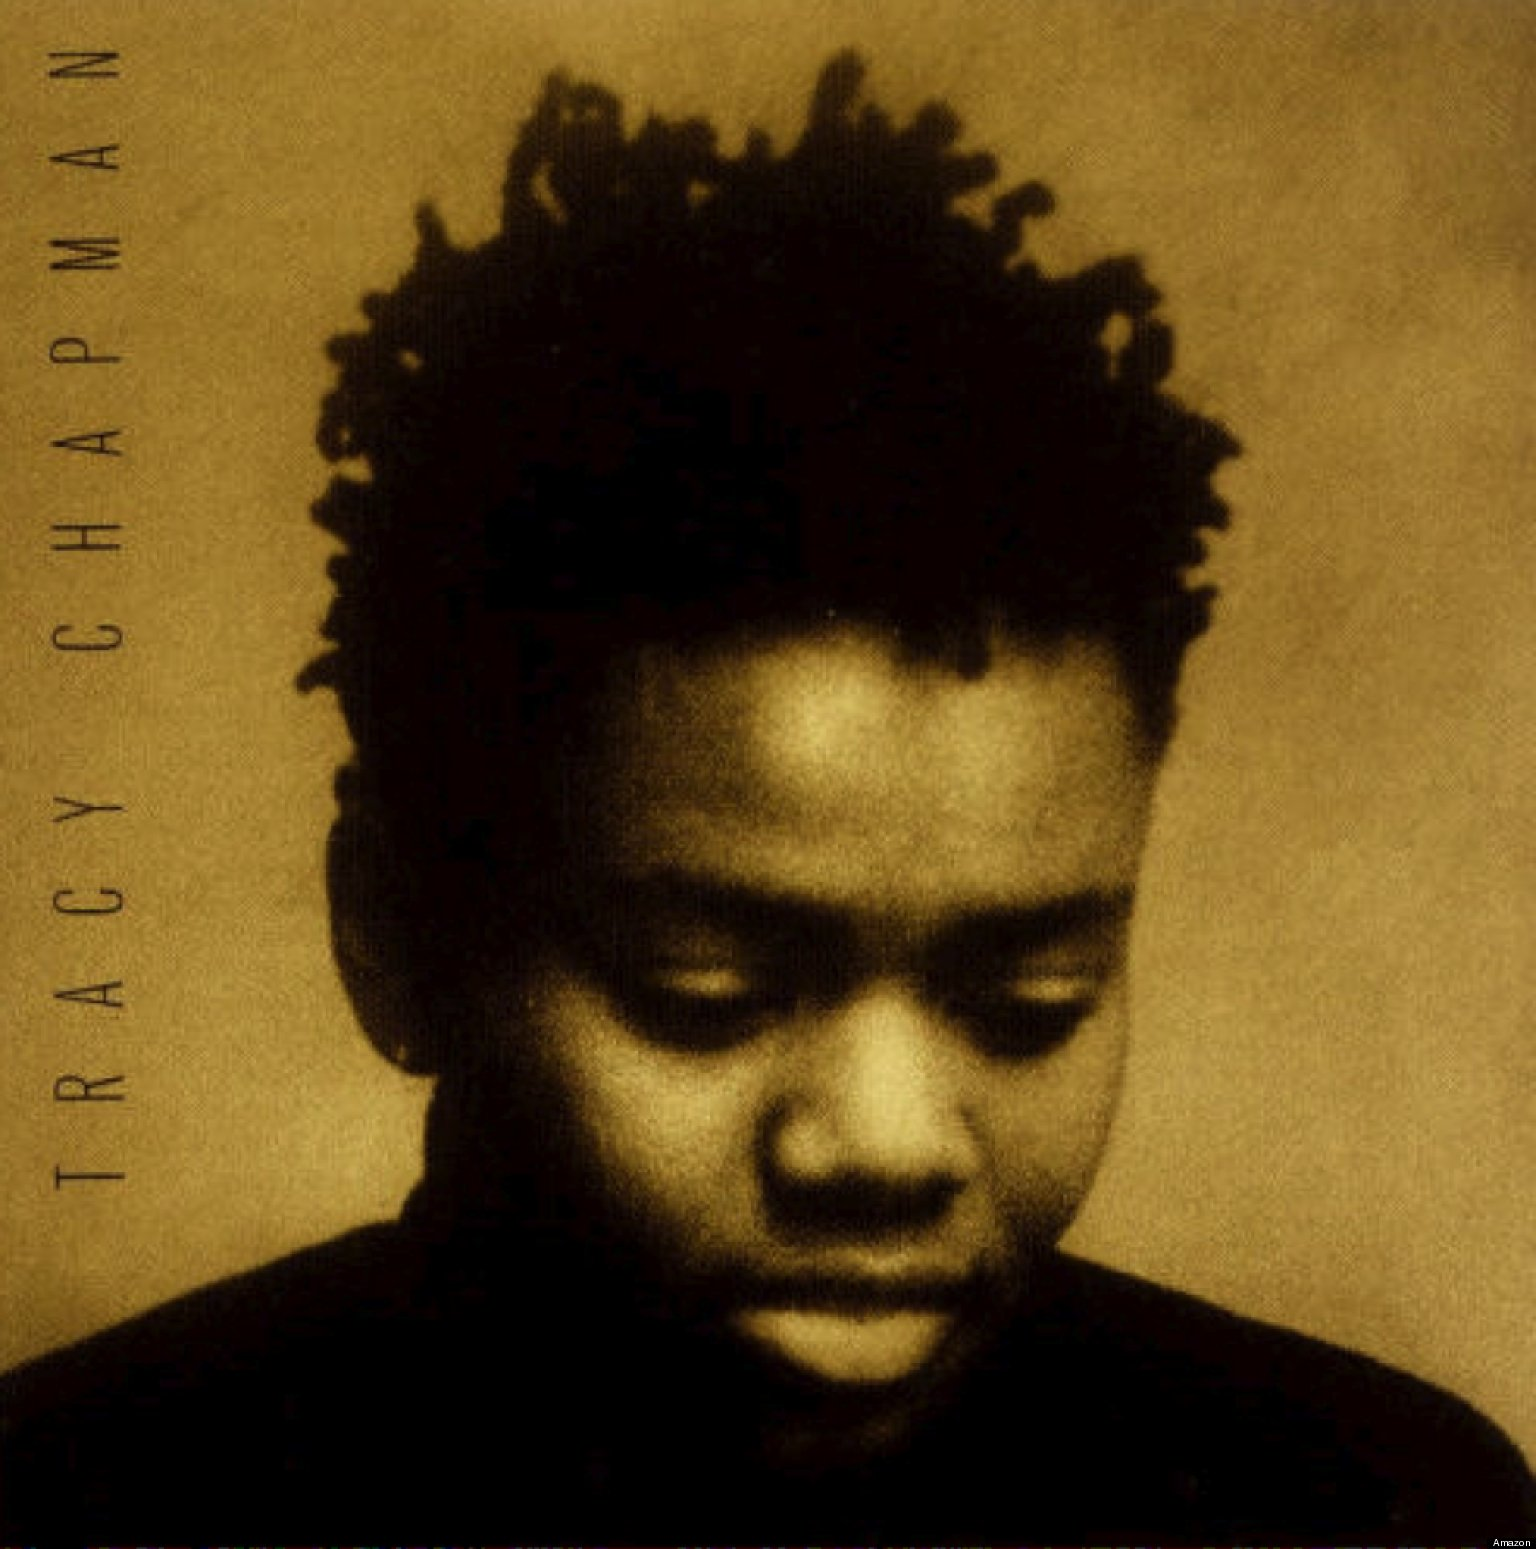 I Love Music My Top Tracy Chapman Songs ClassicallyIvy - Fast car 2016 song